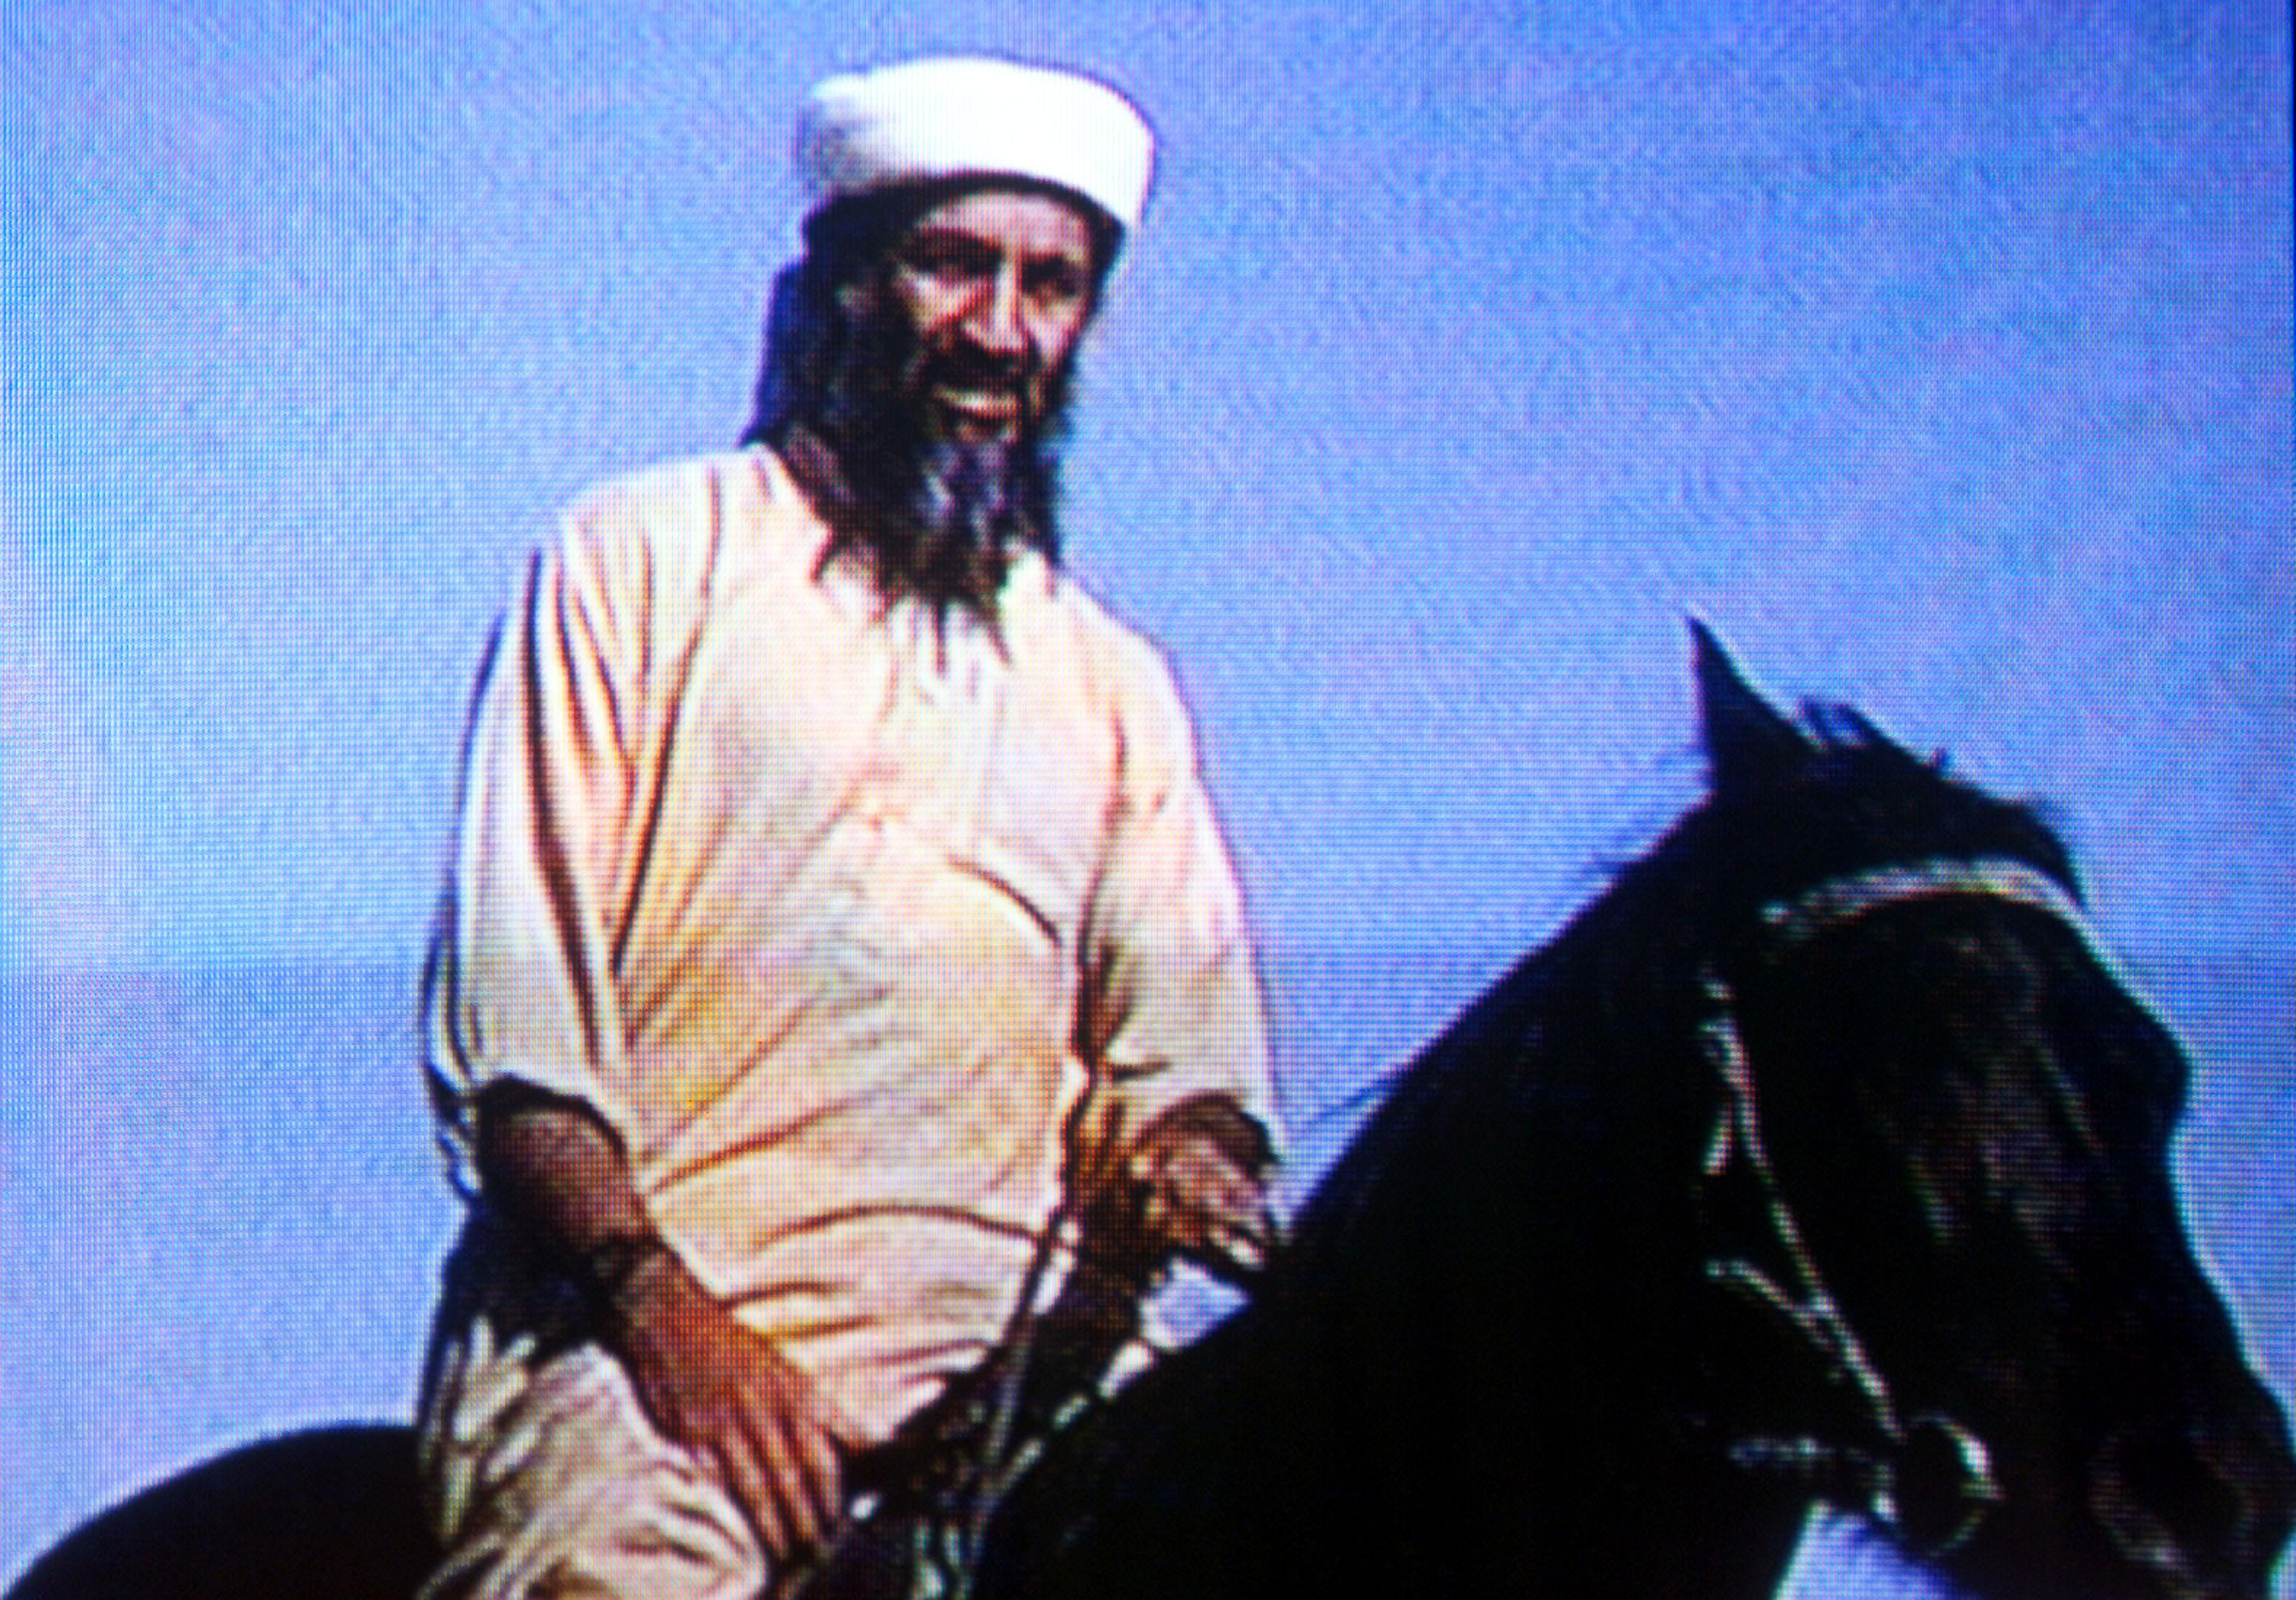 CIA Releases Bin Laden's Personal Journal, Much More